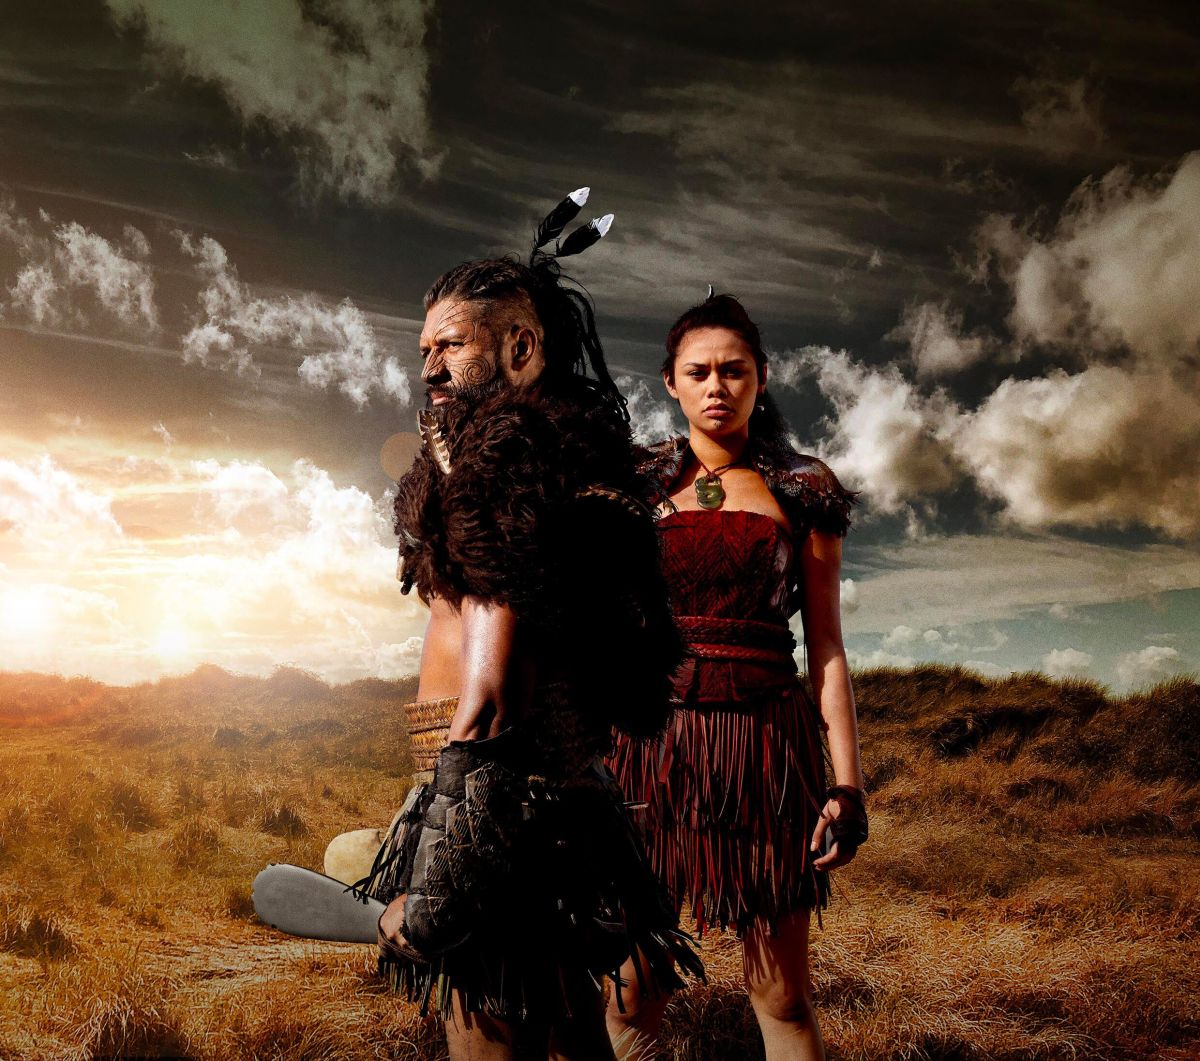 Supernatural Maori THE DEAD LANDS Comes to Shudder January 2019